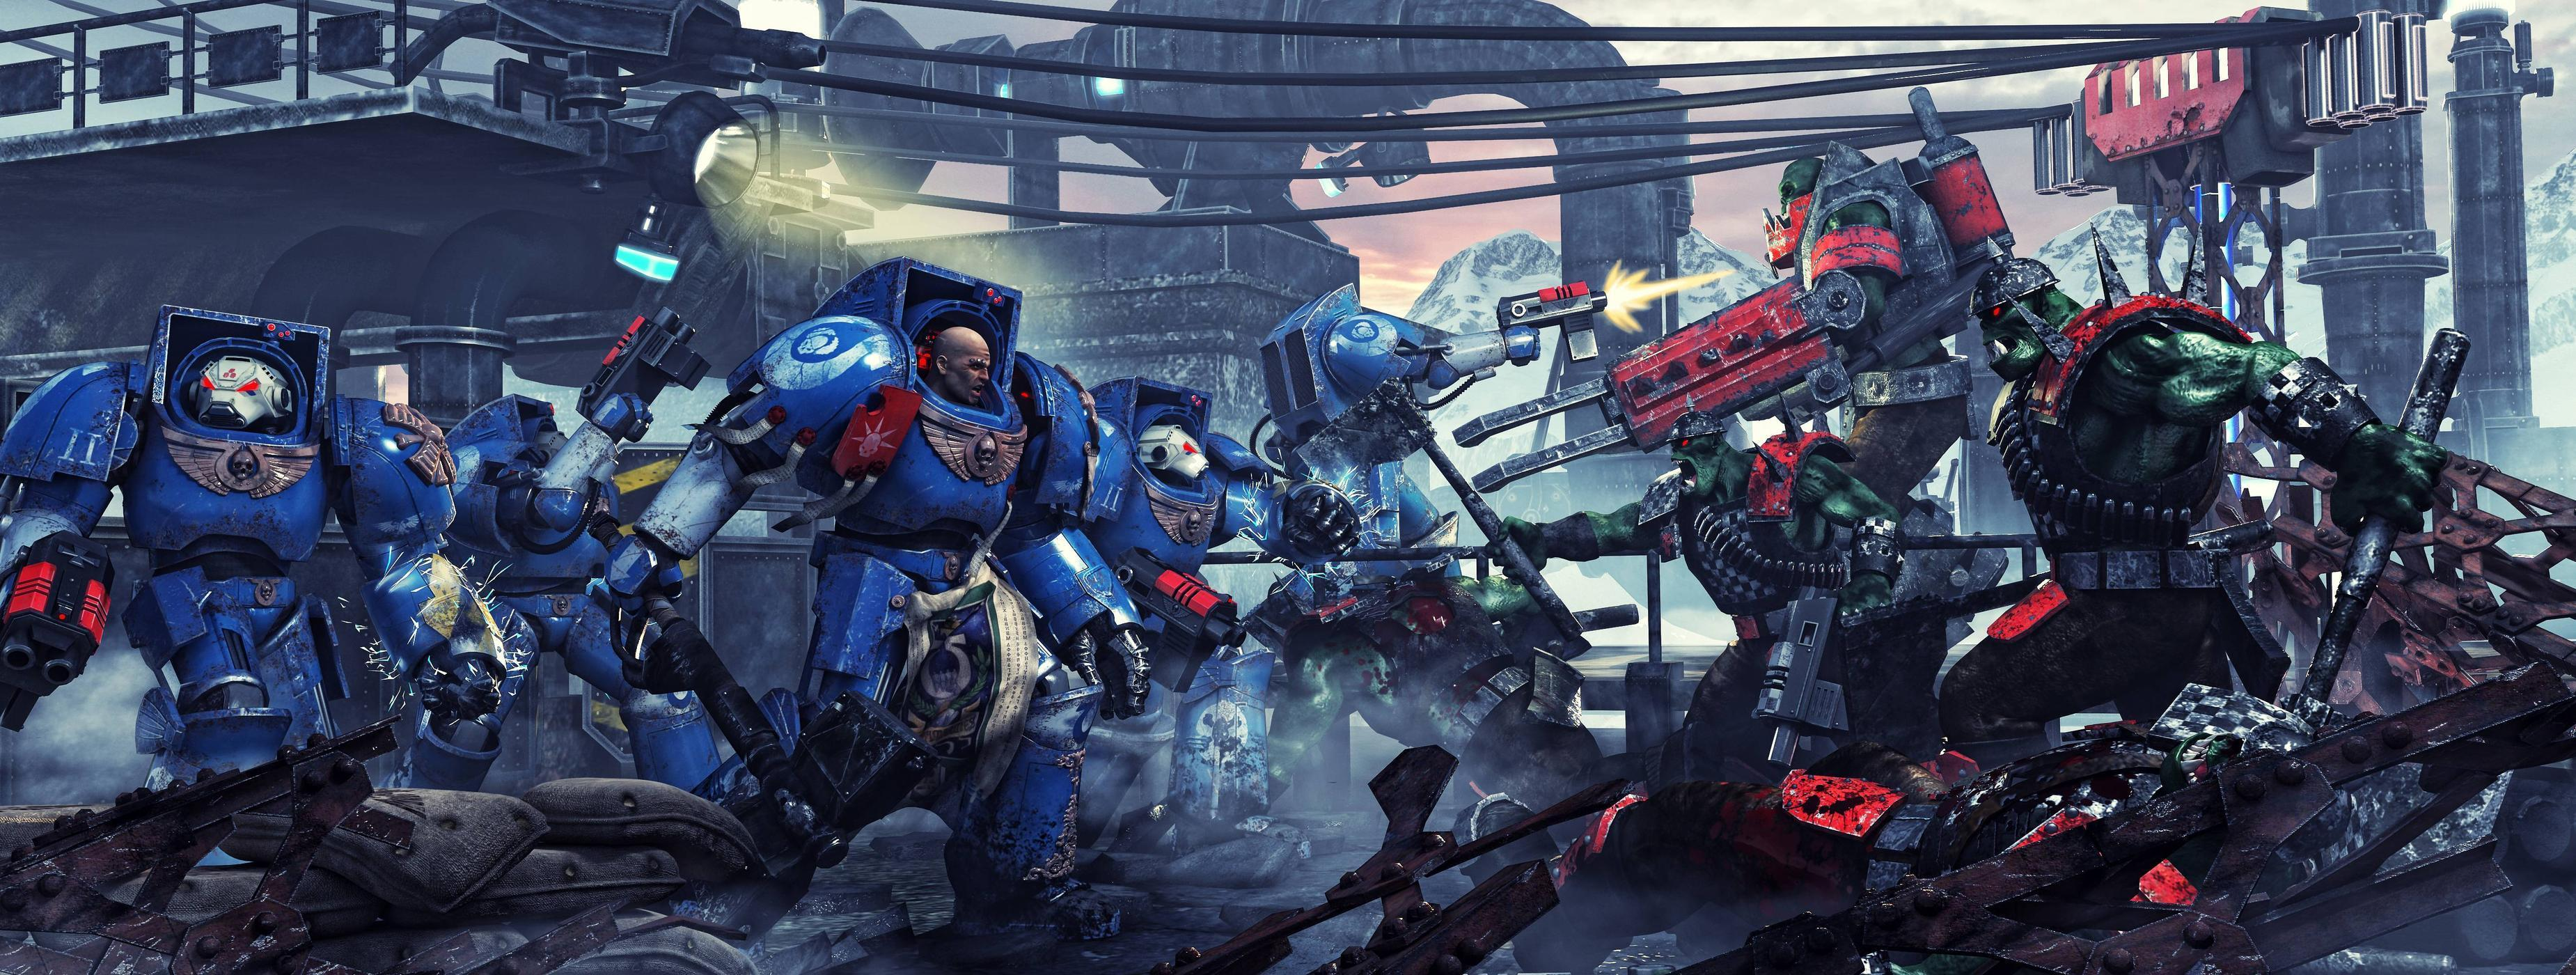 Download wallpapers Ultramarines, Orcs, Space Marines, armor free